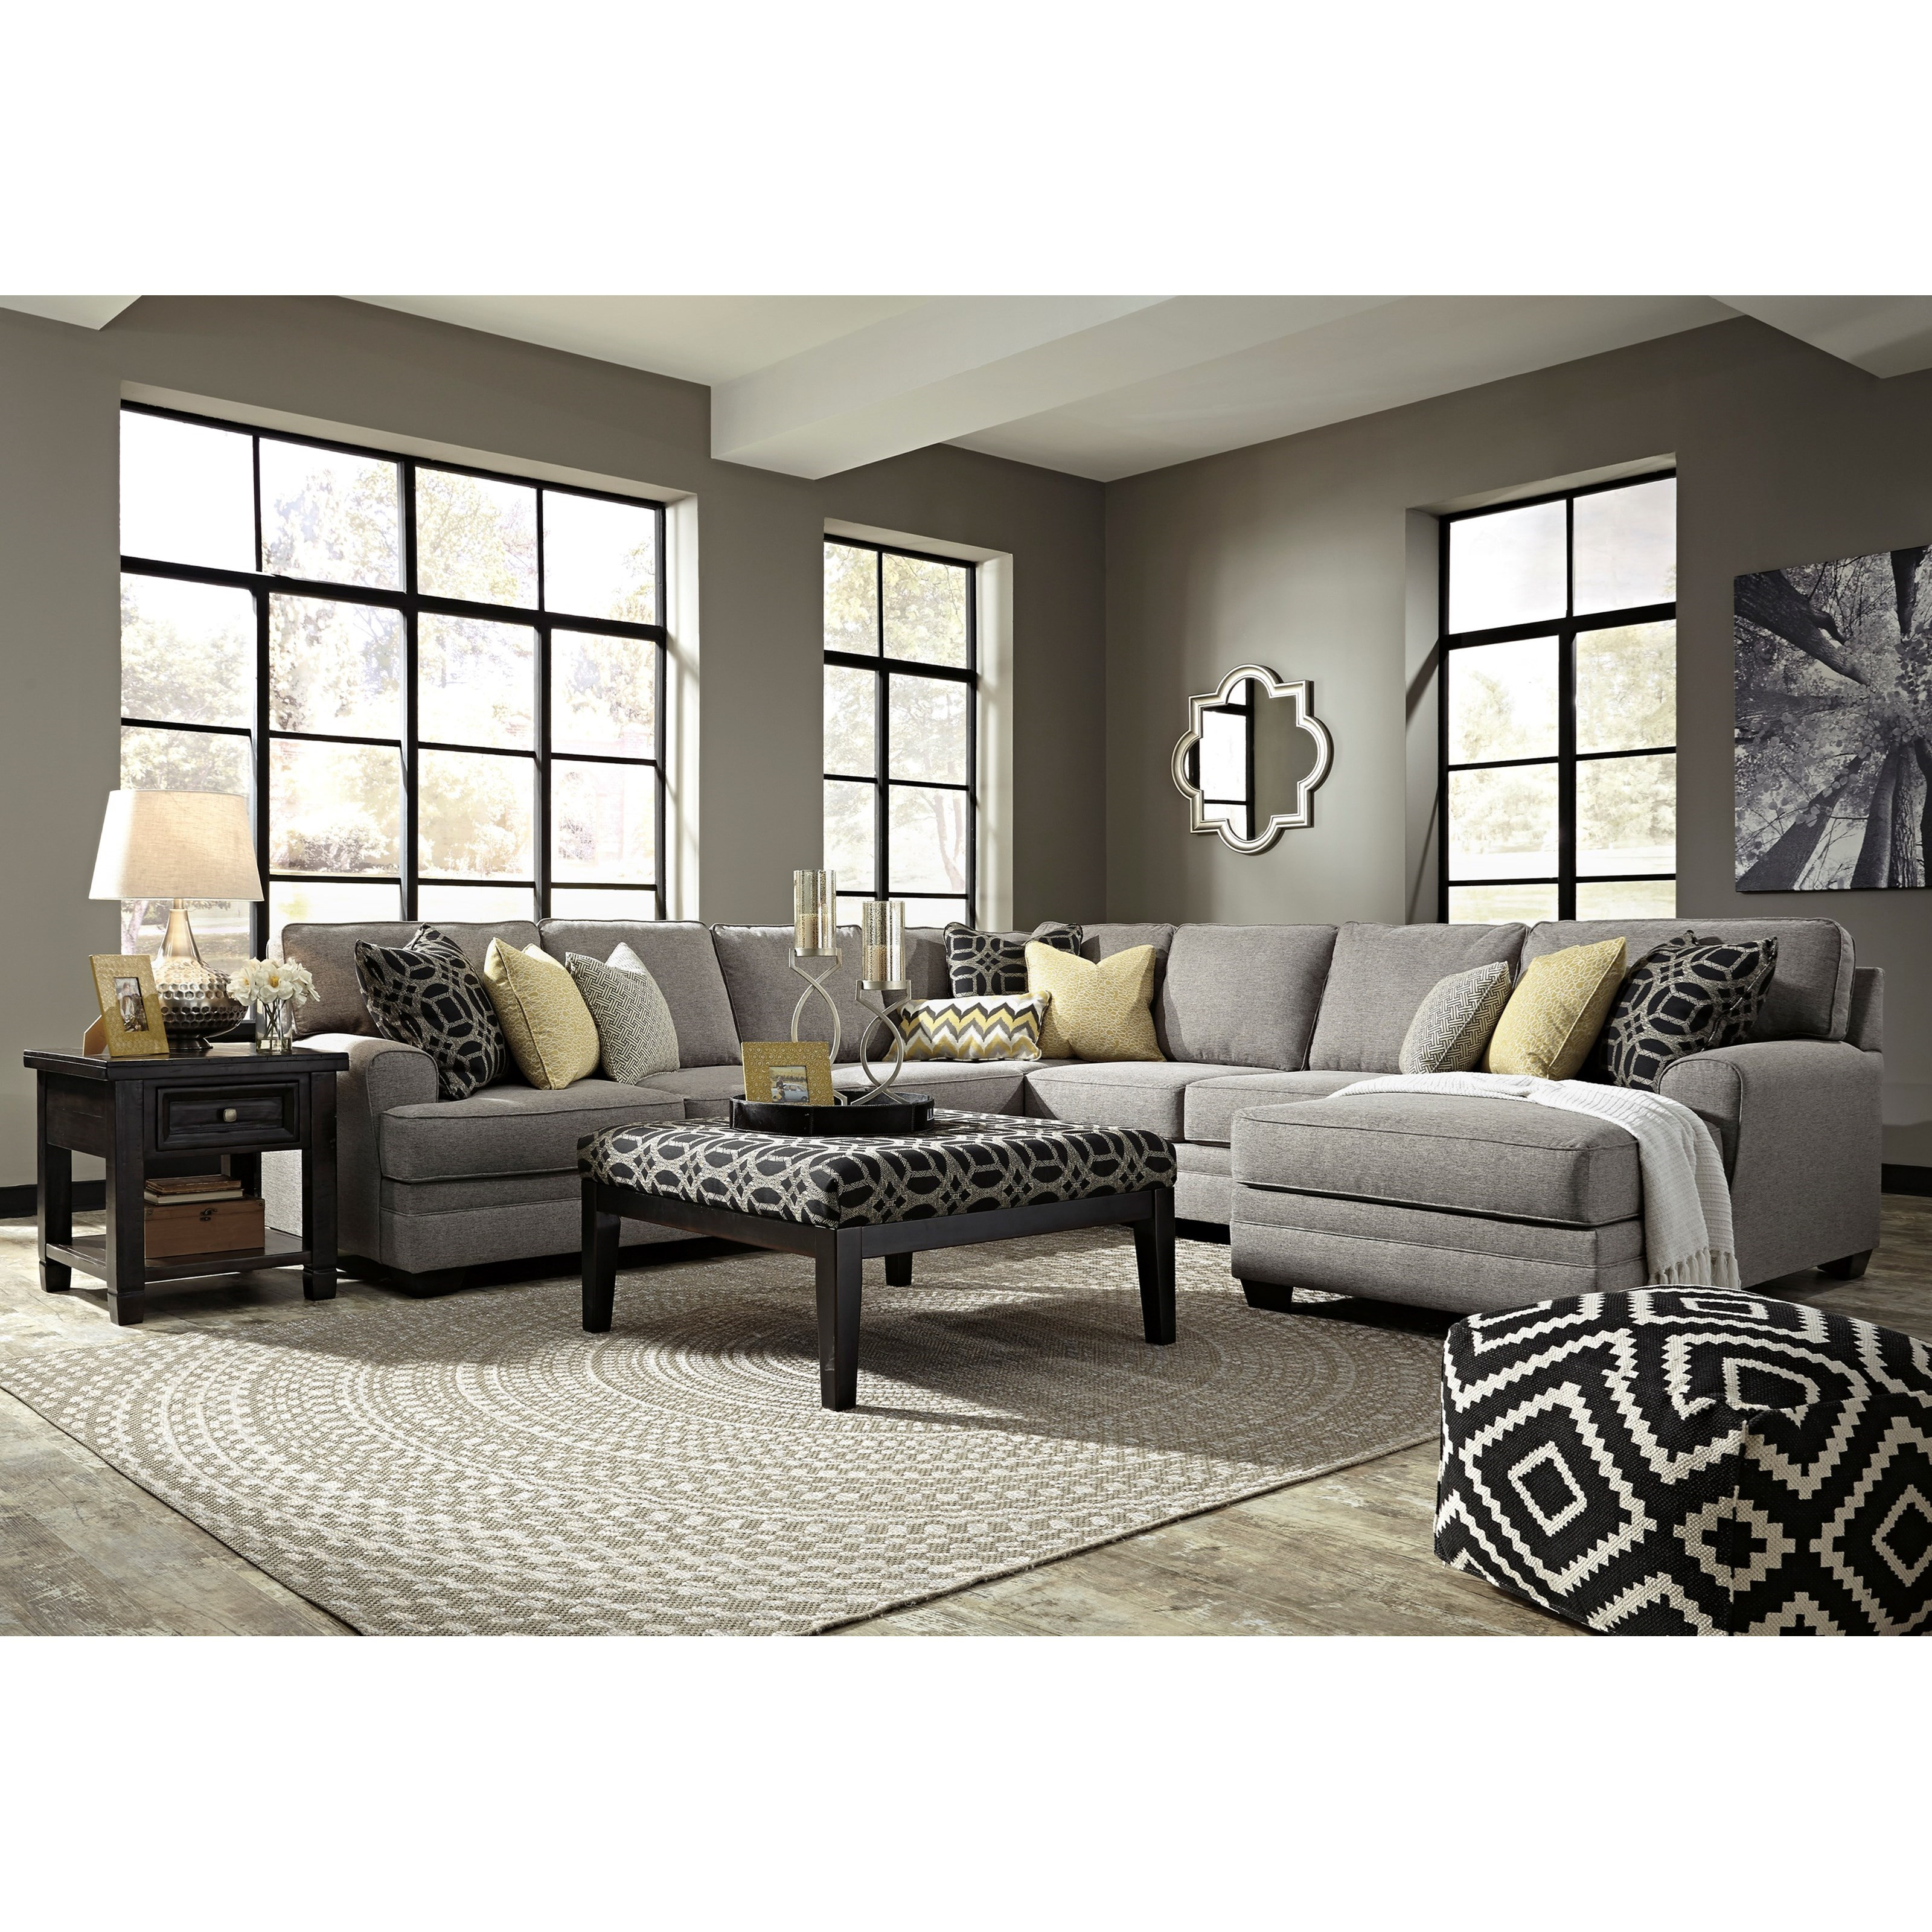 Benchcraft Cresson Stationary Living Room Group Marlo